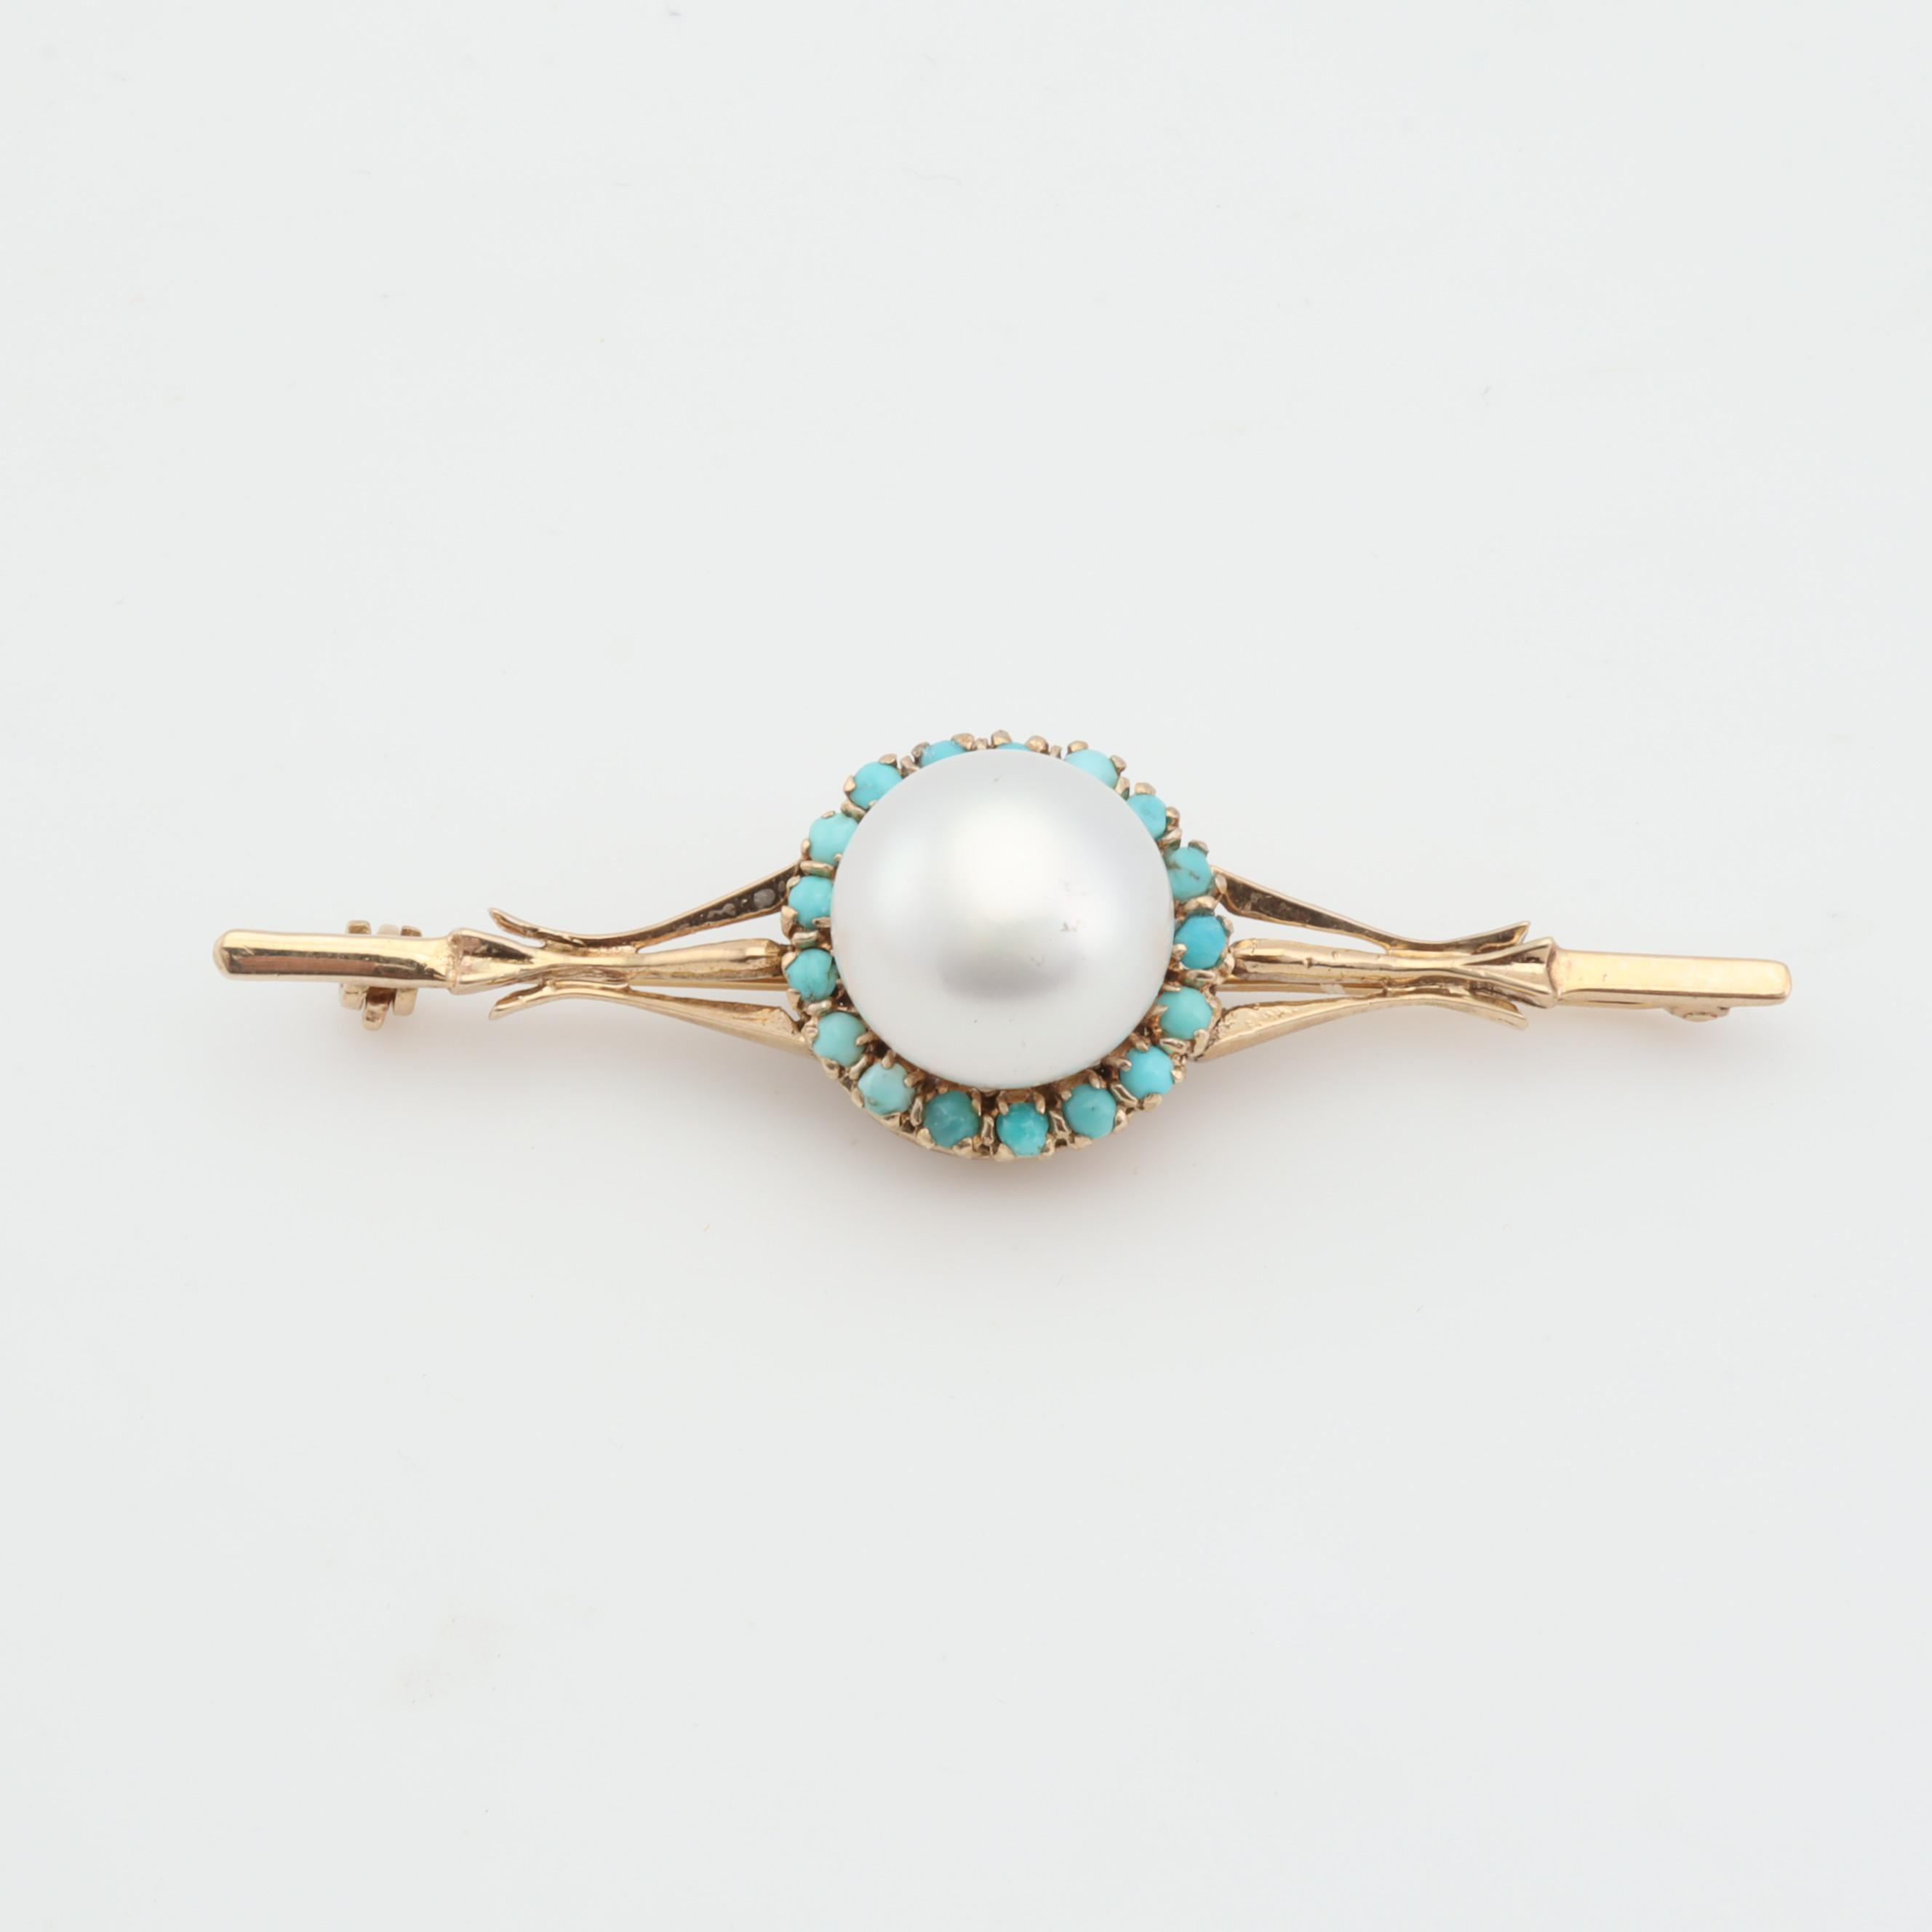 14K Yellow Gold Cultured Mabe Pearl and Turquoise Pin